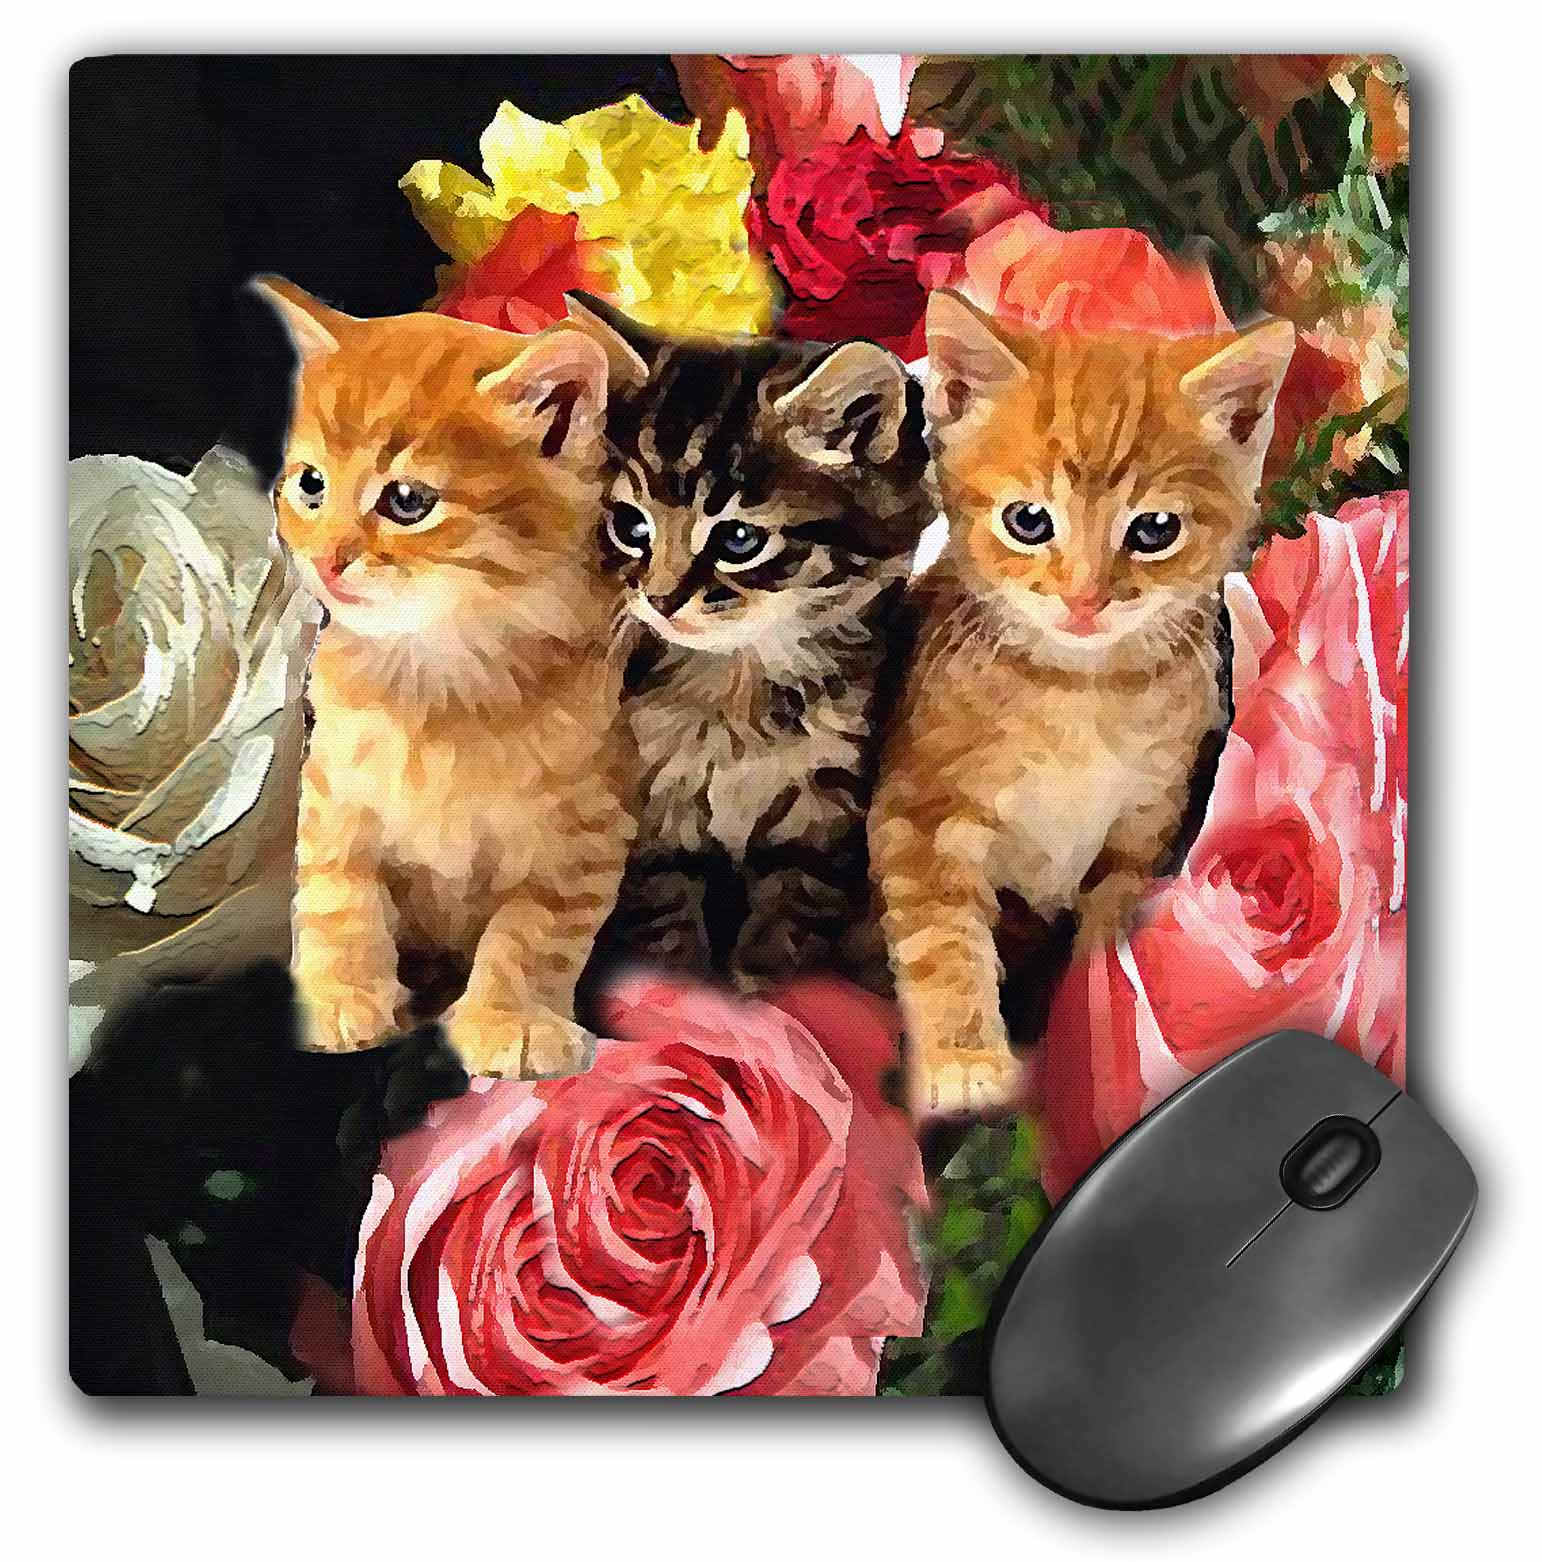 3dRose Cute Kittens, Mouse Pad, 8 by 8 inches